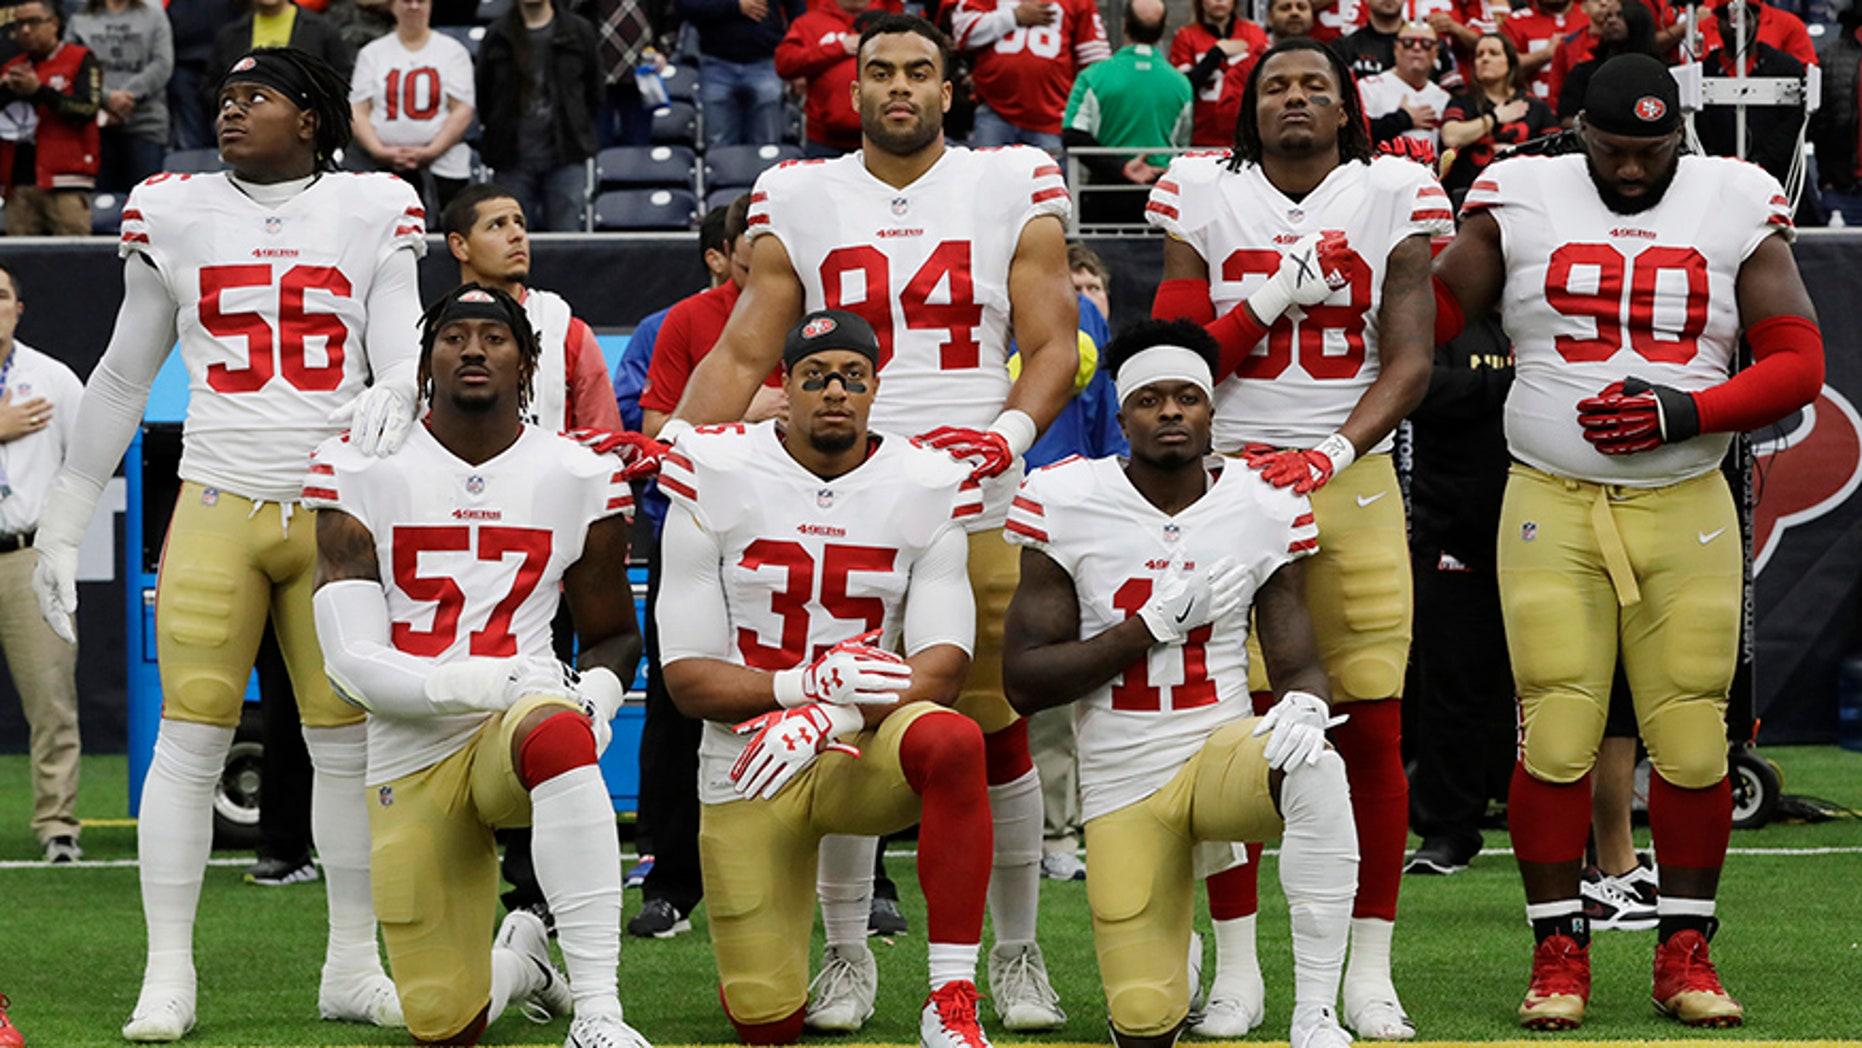 Dec. 10, 2017: San Francisco 49ers players kneel during the national anthem before an NFL football game against the Houston Texans.